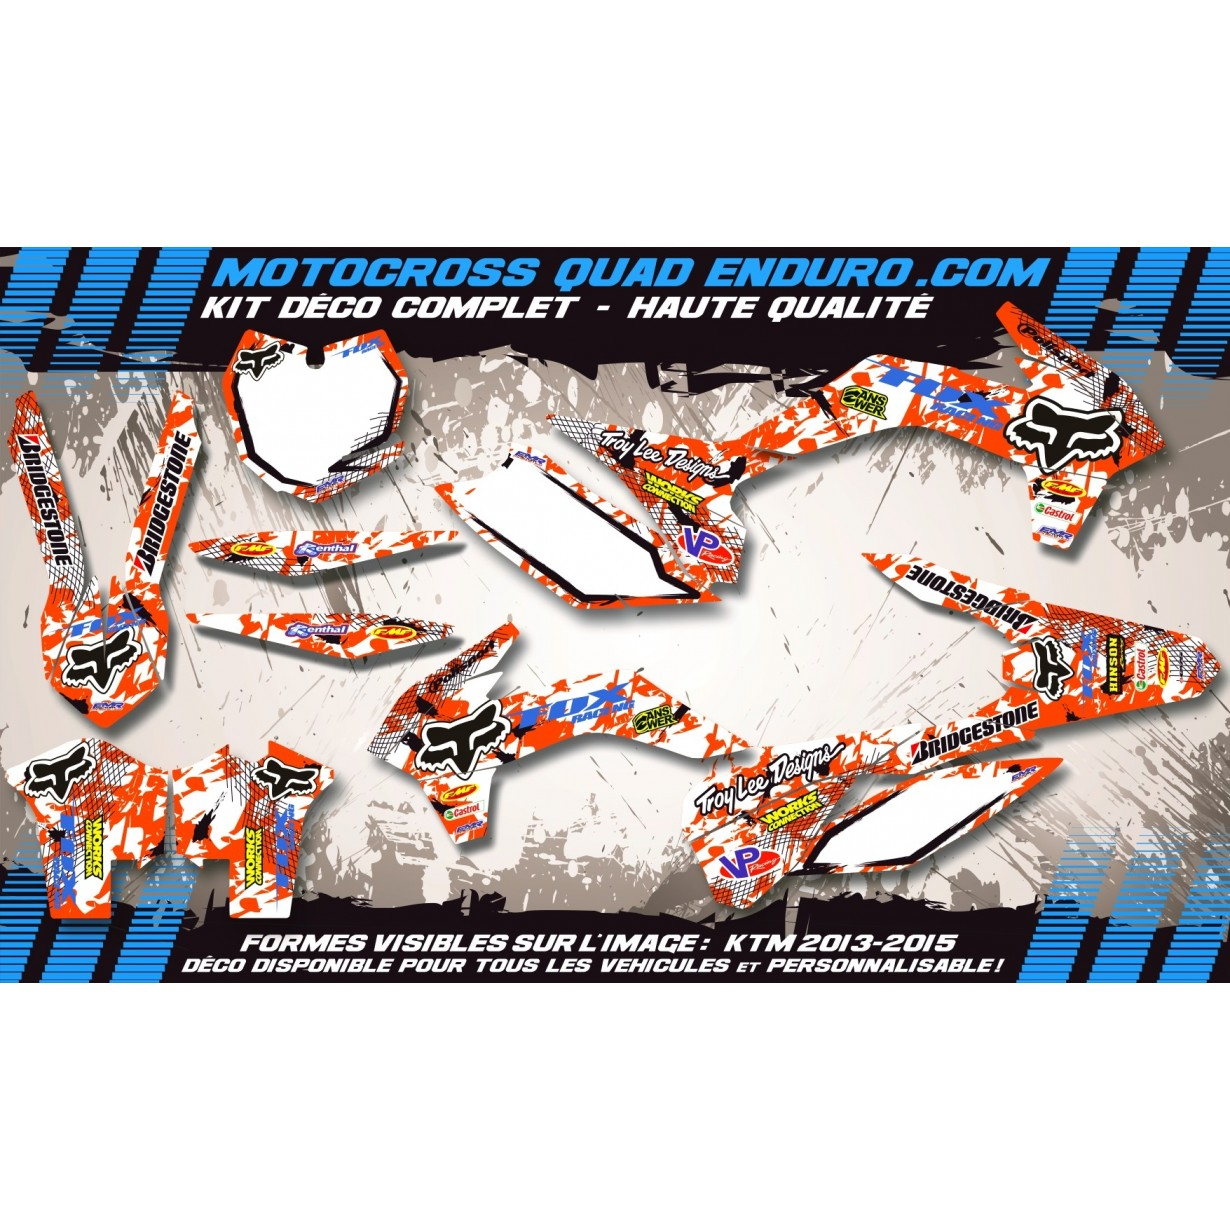 KIT DÉCO Perso SMC 690 13-15 FOX MA9C